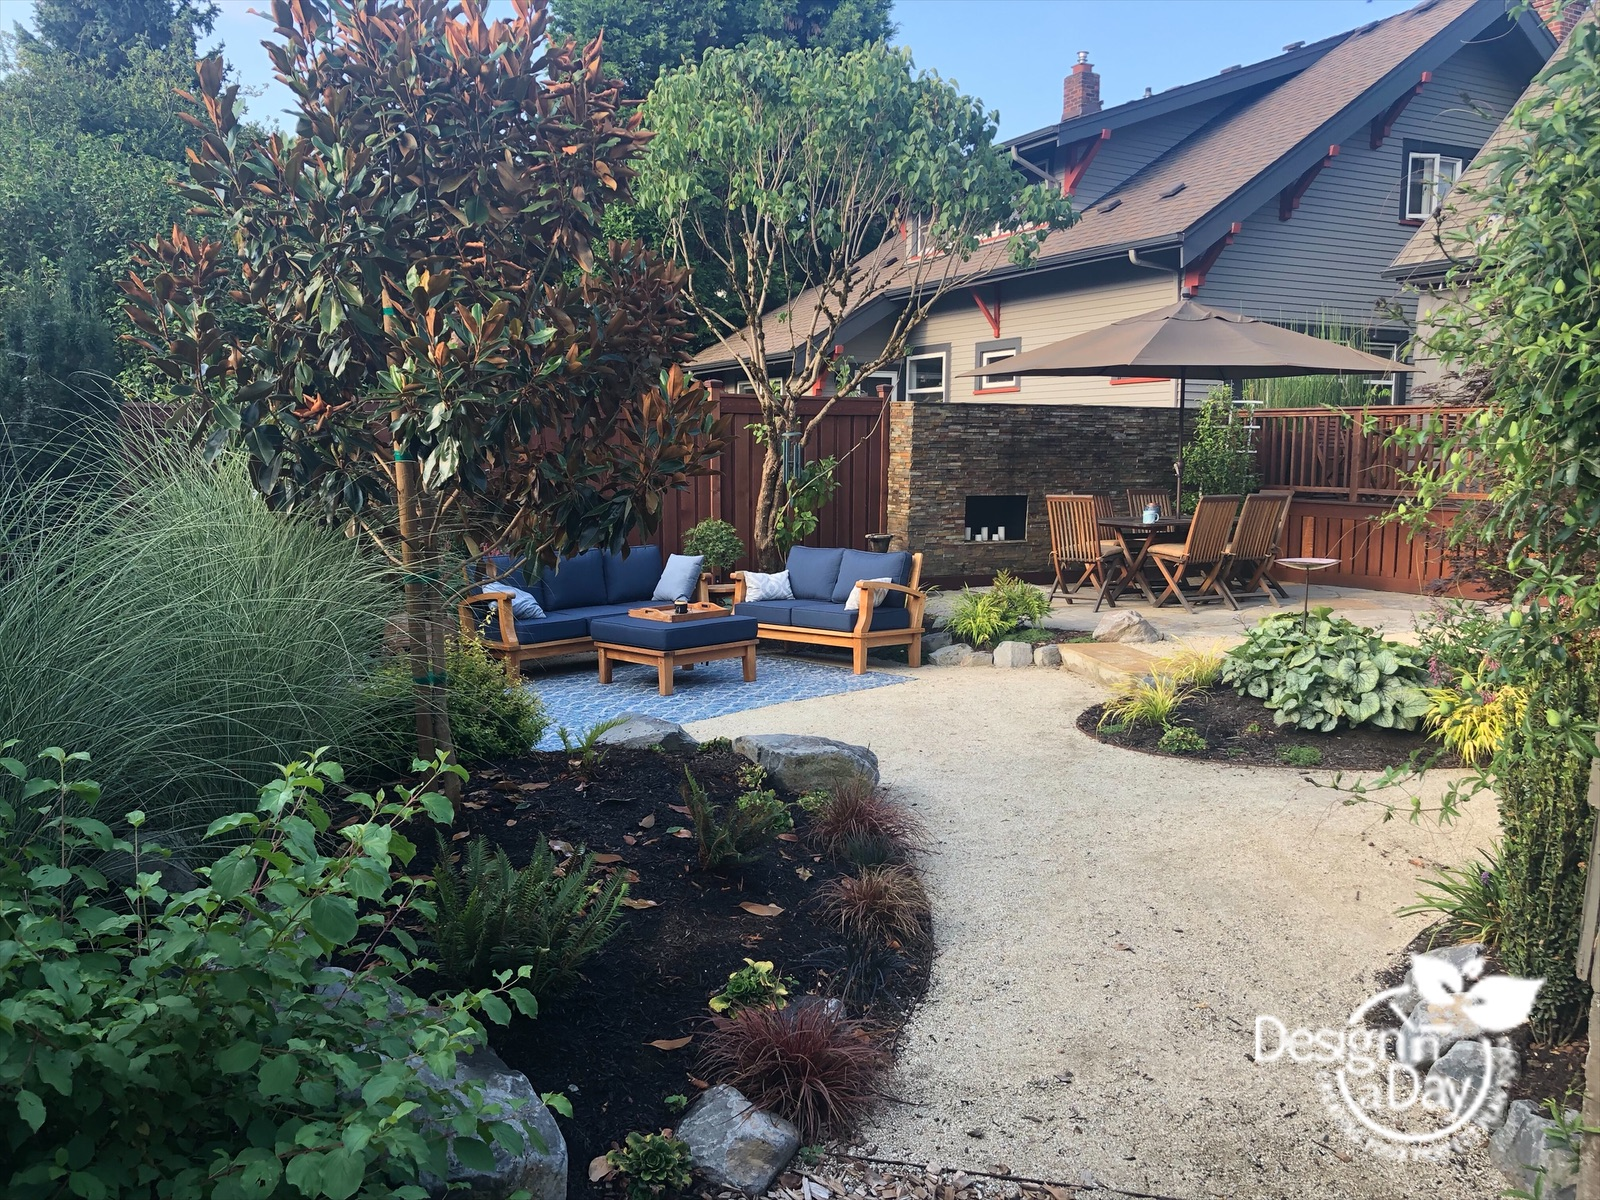 Grant Park Yard Redesign Lanscaping For Dogs Landscape Design In A Day